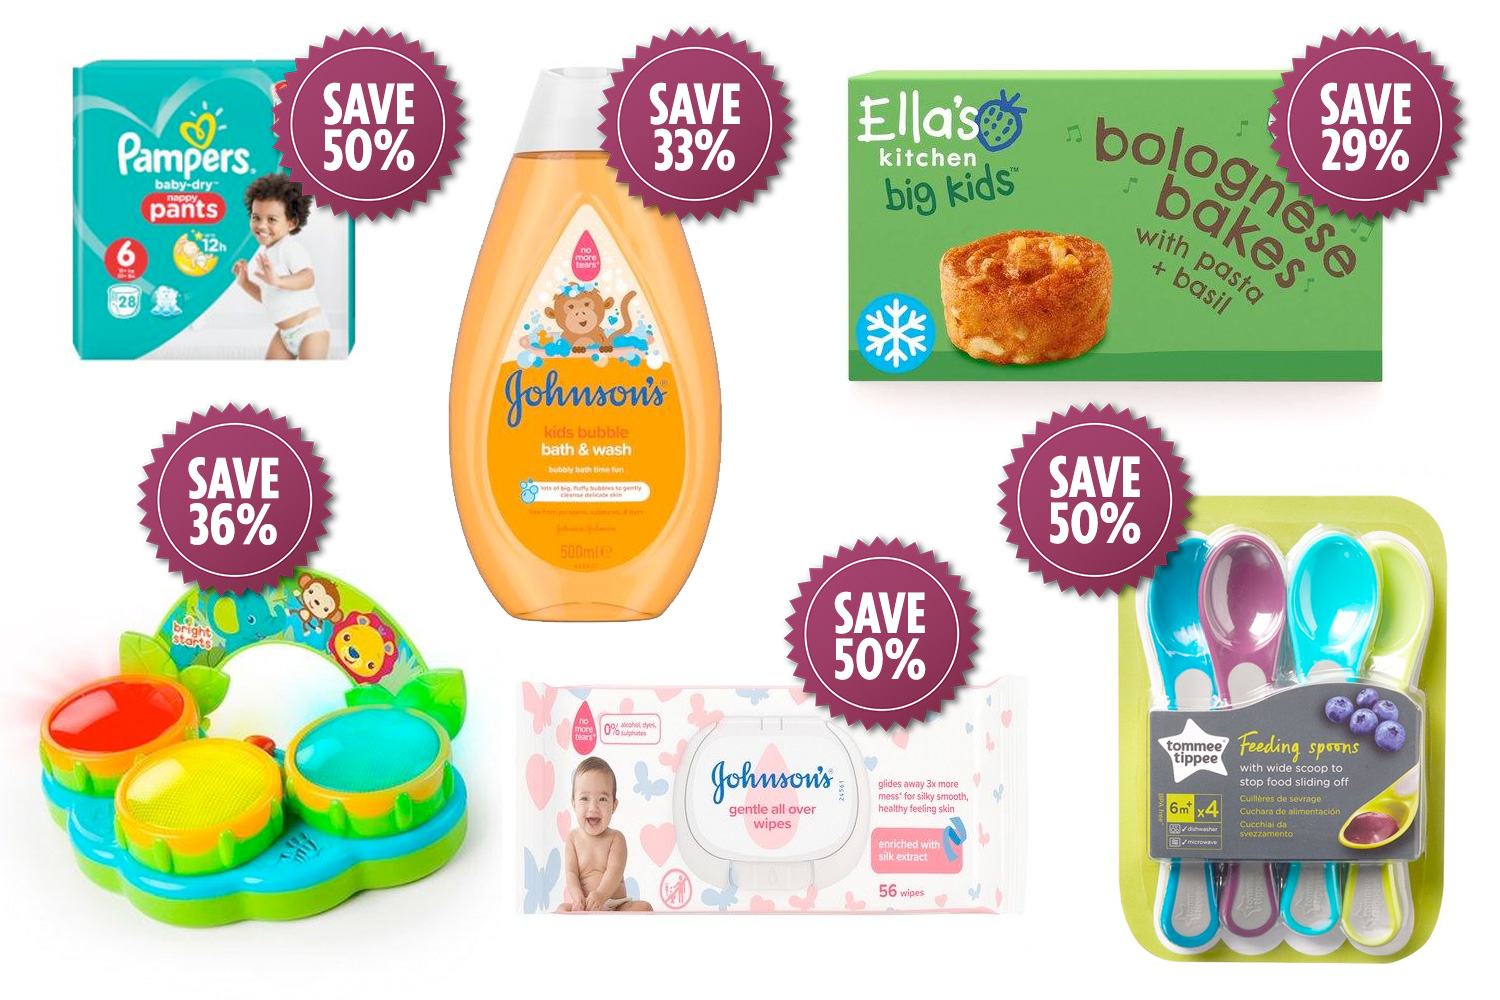 Lidl Baby Steriliser Tesco Is Running A Huge Baby Sale With Up To 50 Off Brands